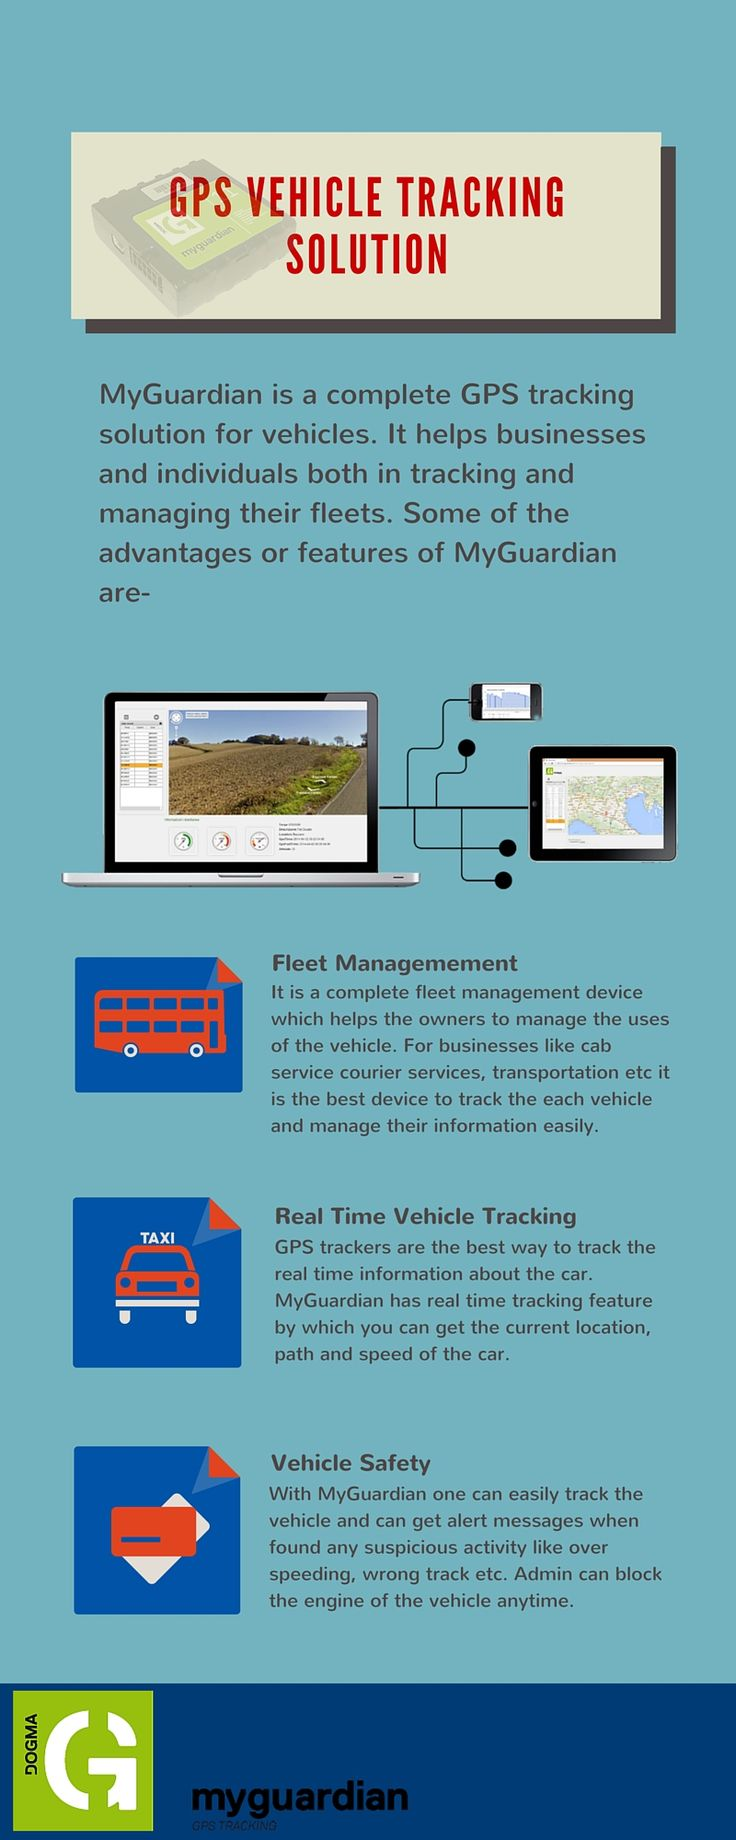 A Device Attached To The System Is Not Functioning Endearing 13 Best Gps Tracking And Fleet Management Images On Pinterest Design Decoration